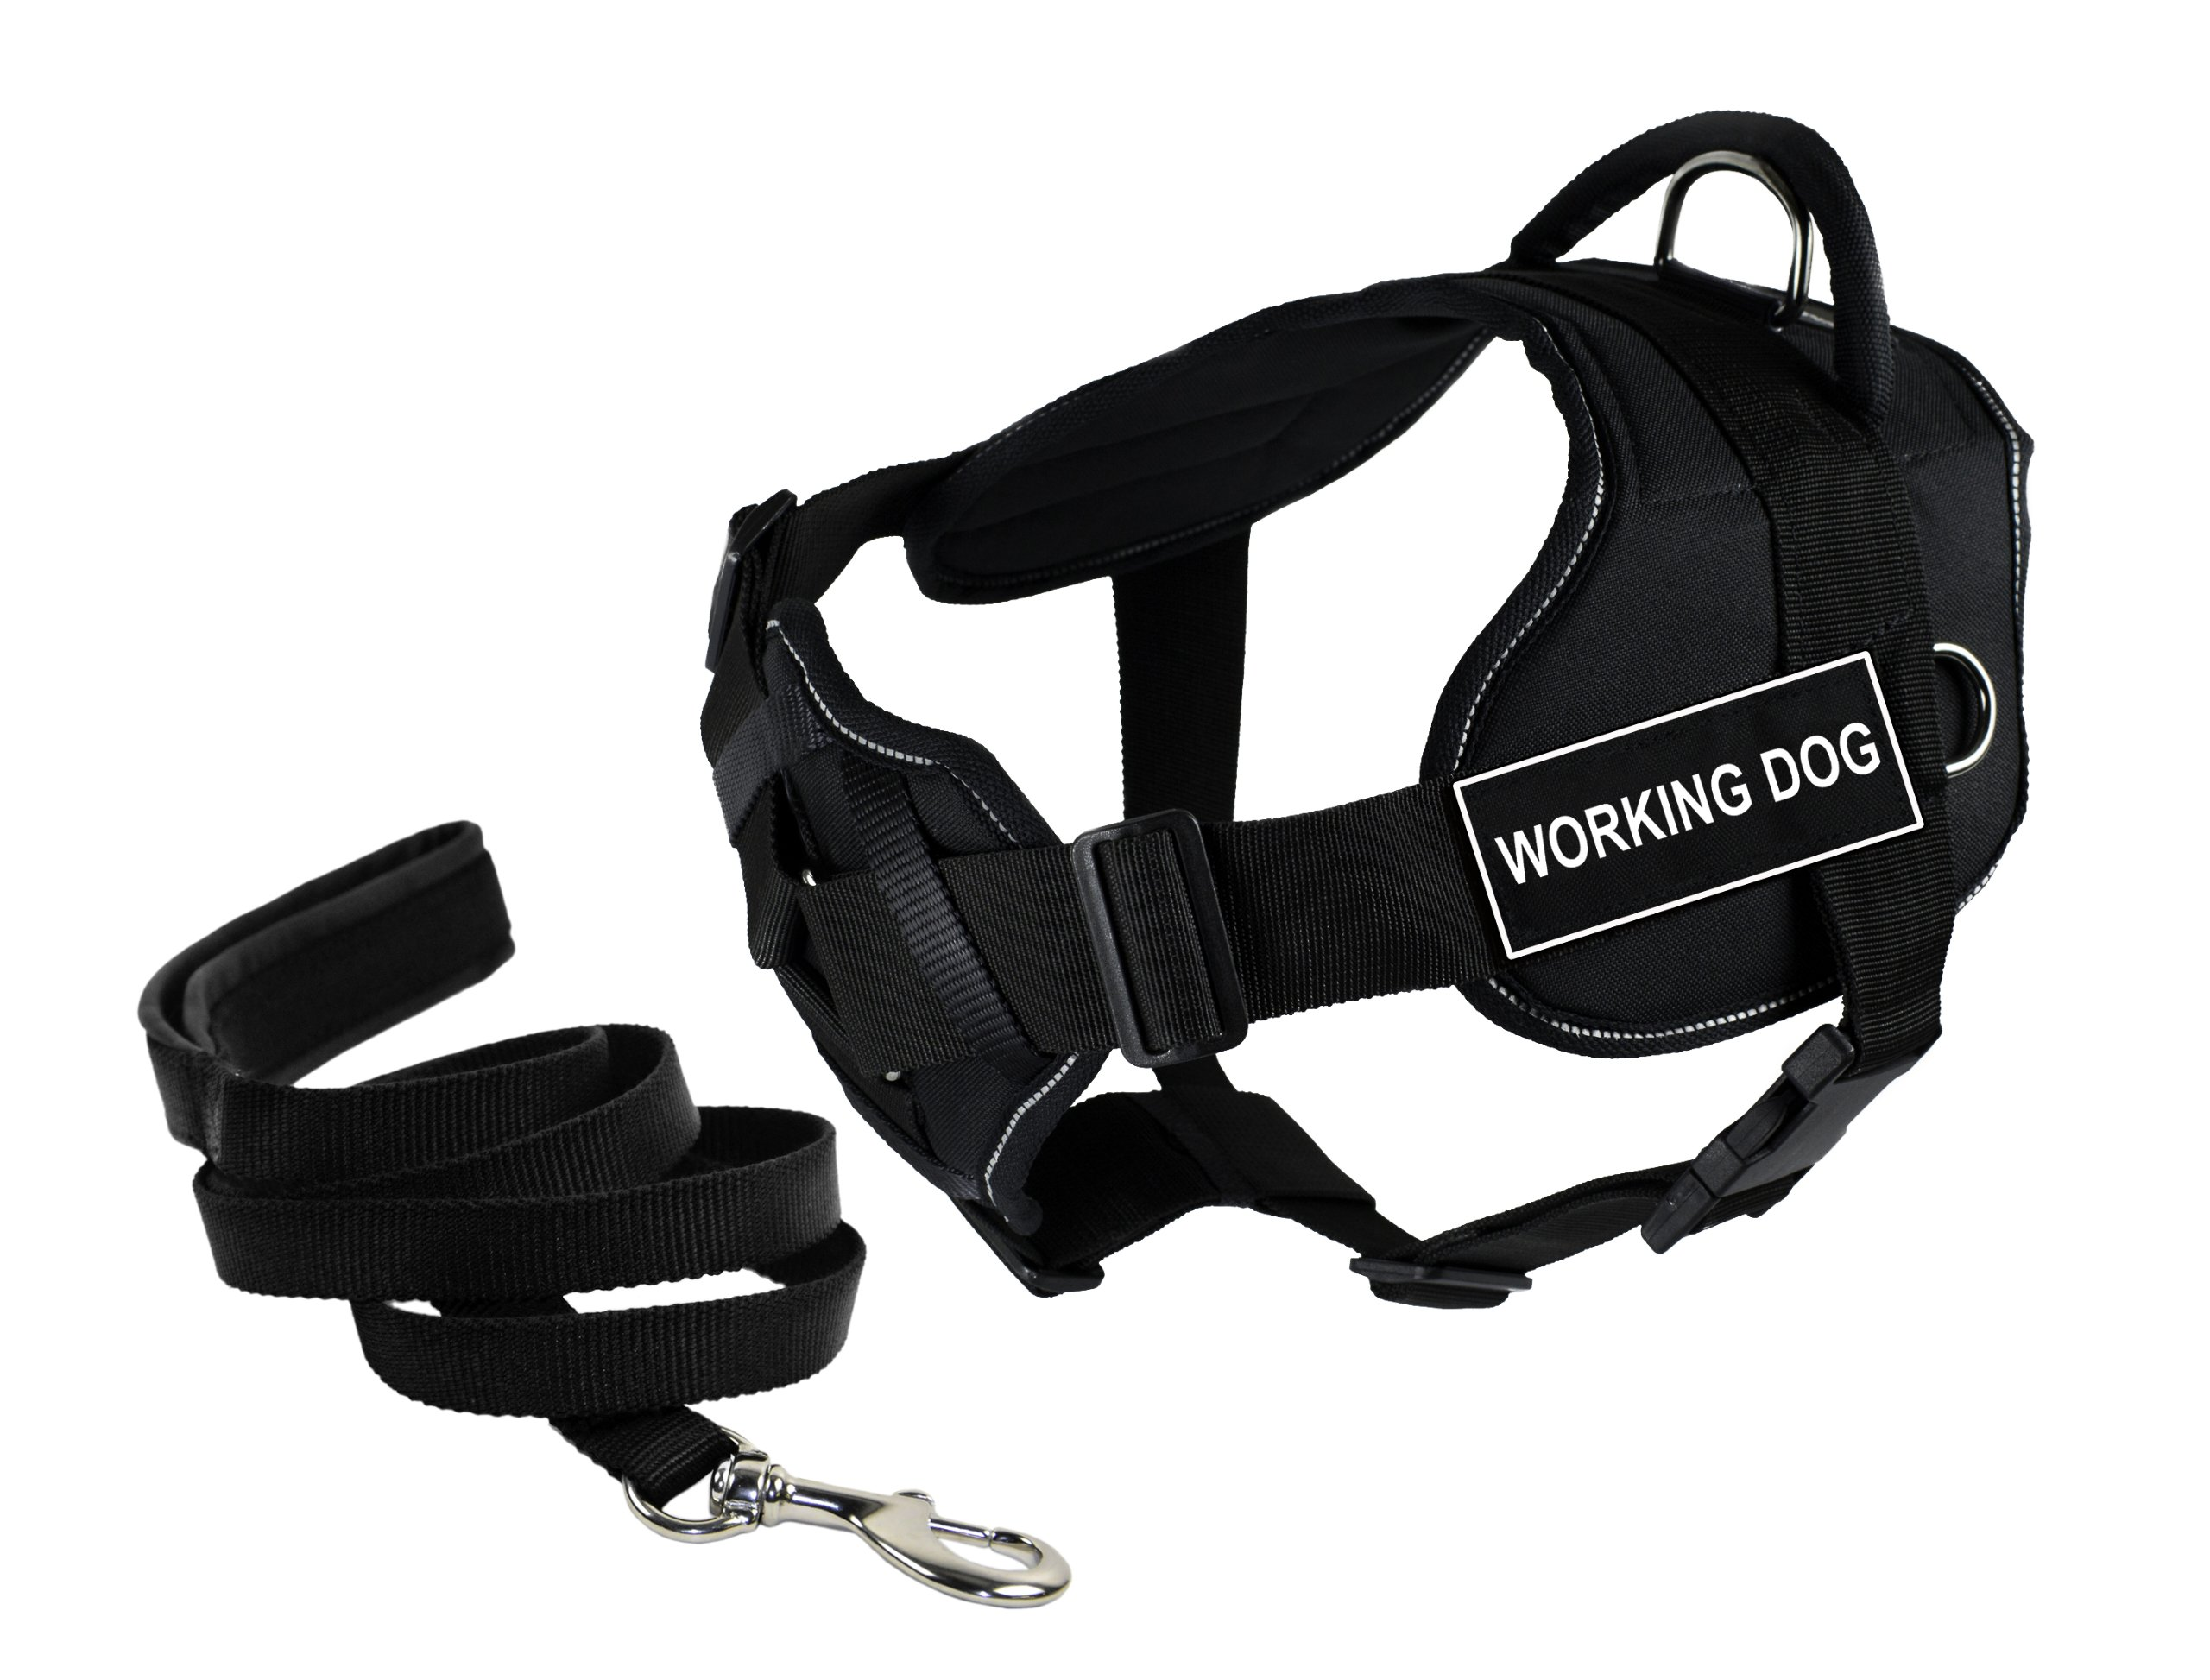 Dean & Tyler's DT Fun Chest Support ''WORKING DOG'' Harness with Reflective Trim, X-Large, and 6 ft Padded Puppy Leash.